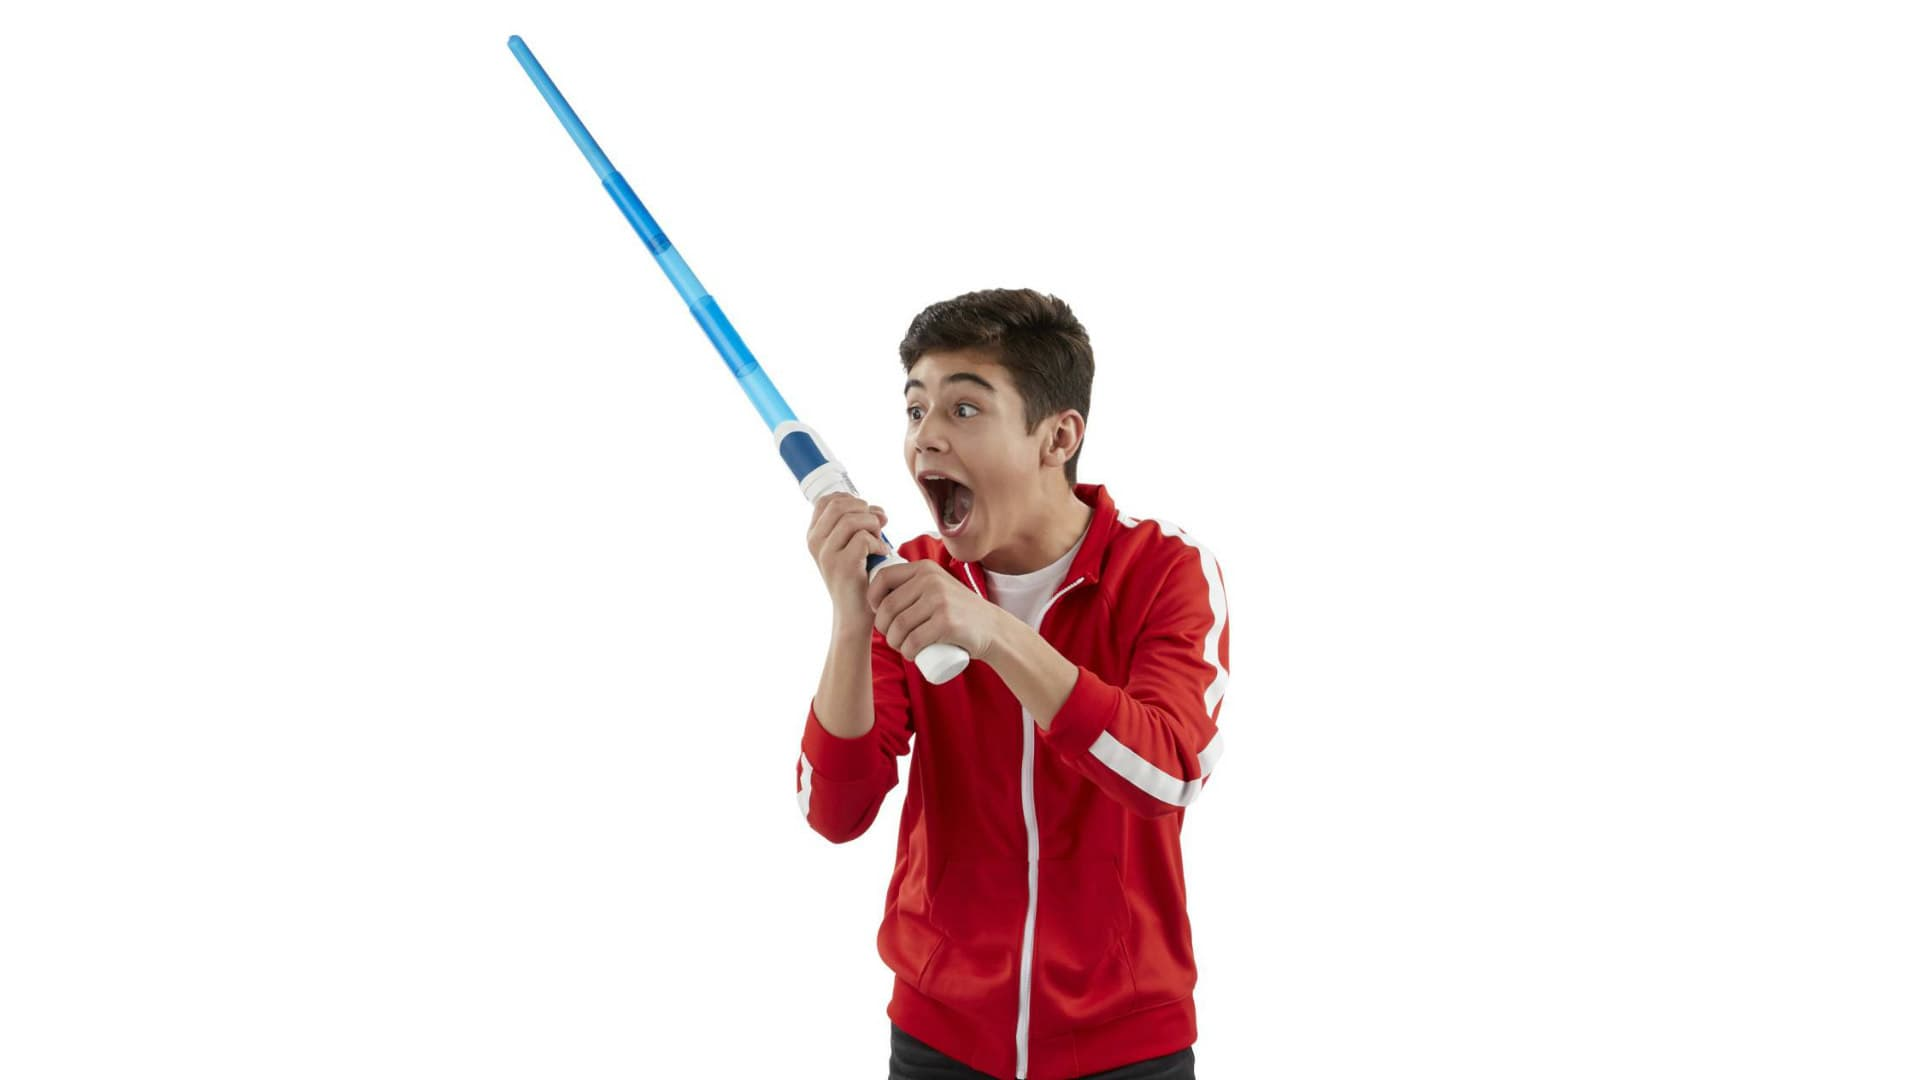 The Star Wars Scream Saber allows boys and girls to record their own lightsaber sounds like wacky screams, funny animal noises, and other irreverent sounds.